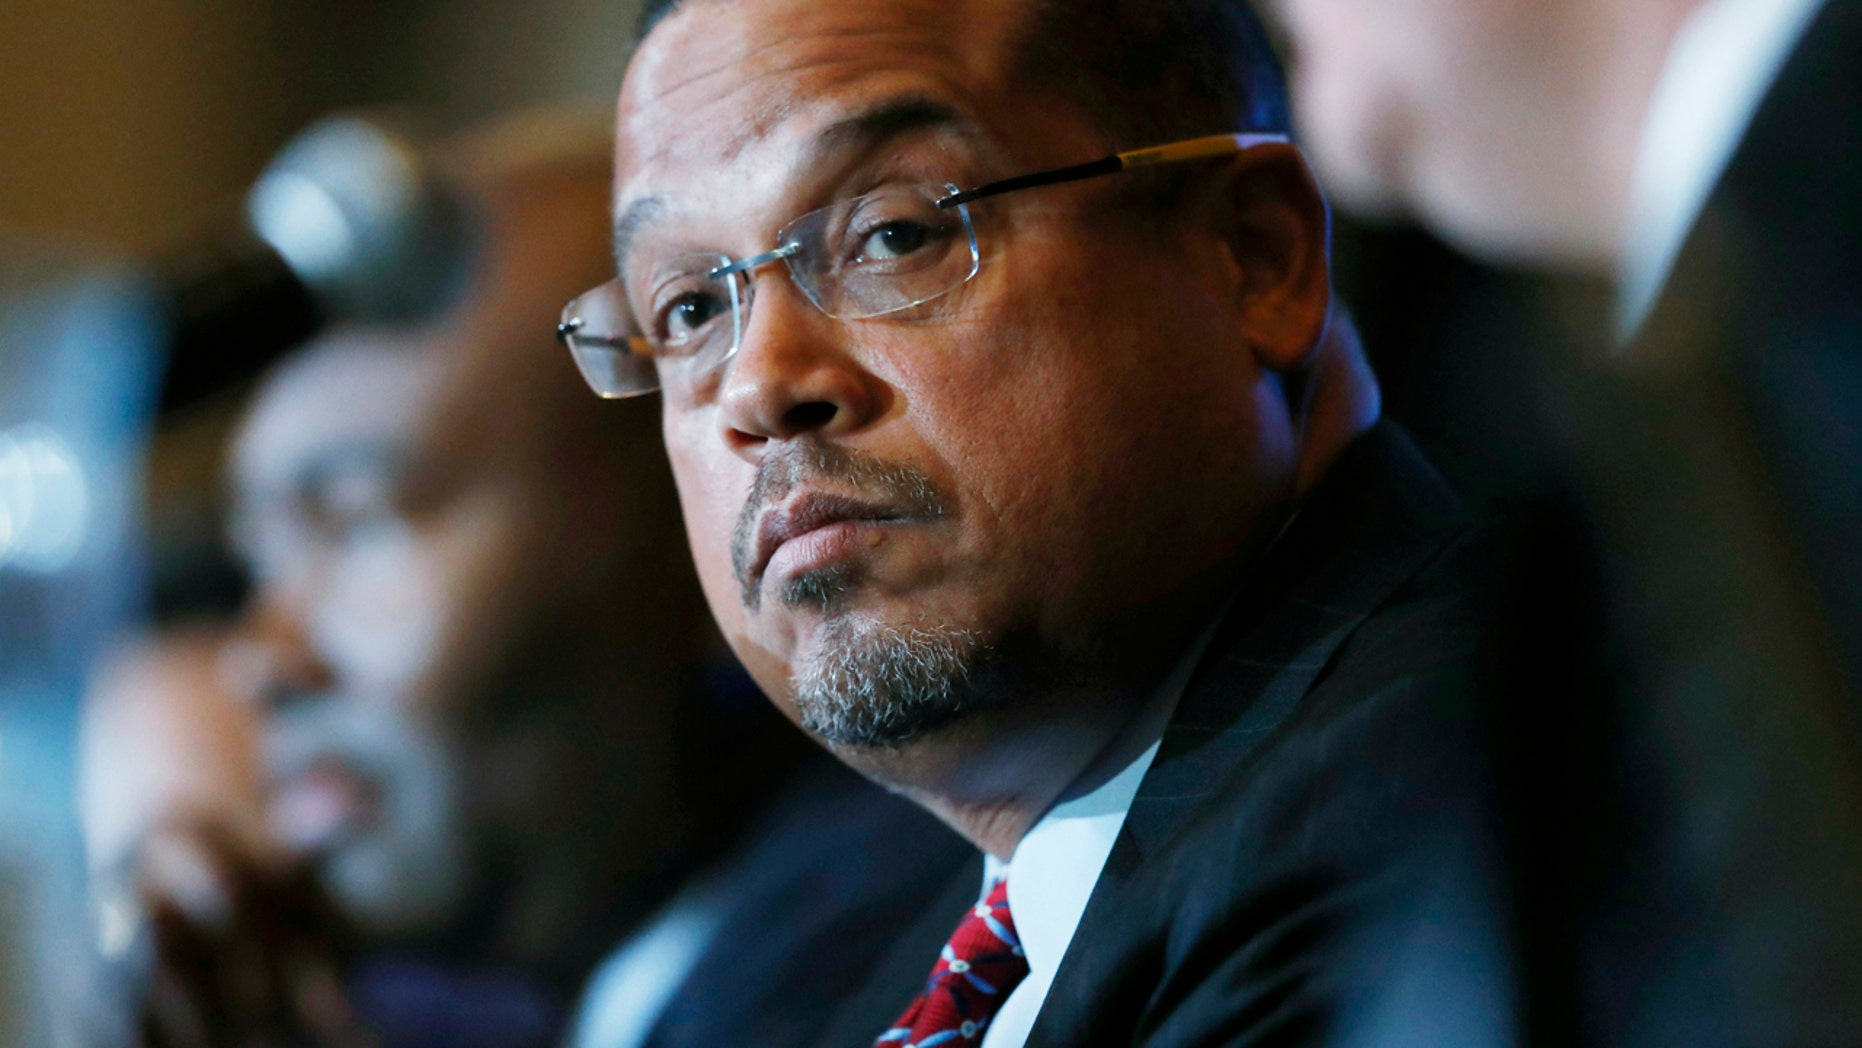 FILE - In a Dec. 2, 2016 file photo, U.S. Rep. Keith Ellison, D-Minn., listens with Jamie Harrison, back, chair of the South Carolina Democratic Party, as Ray Buckley, chair of the party in New Hampshire, speaks during a forum on the future of the Democratic Party, in Denver.